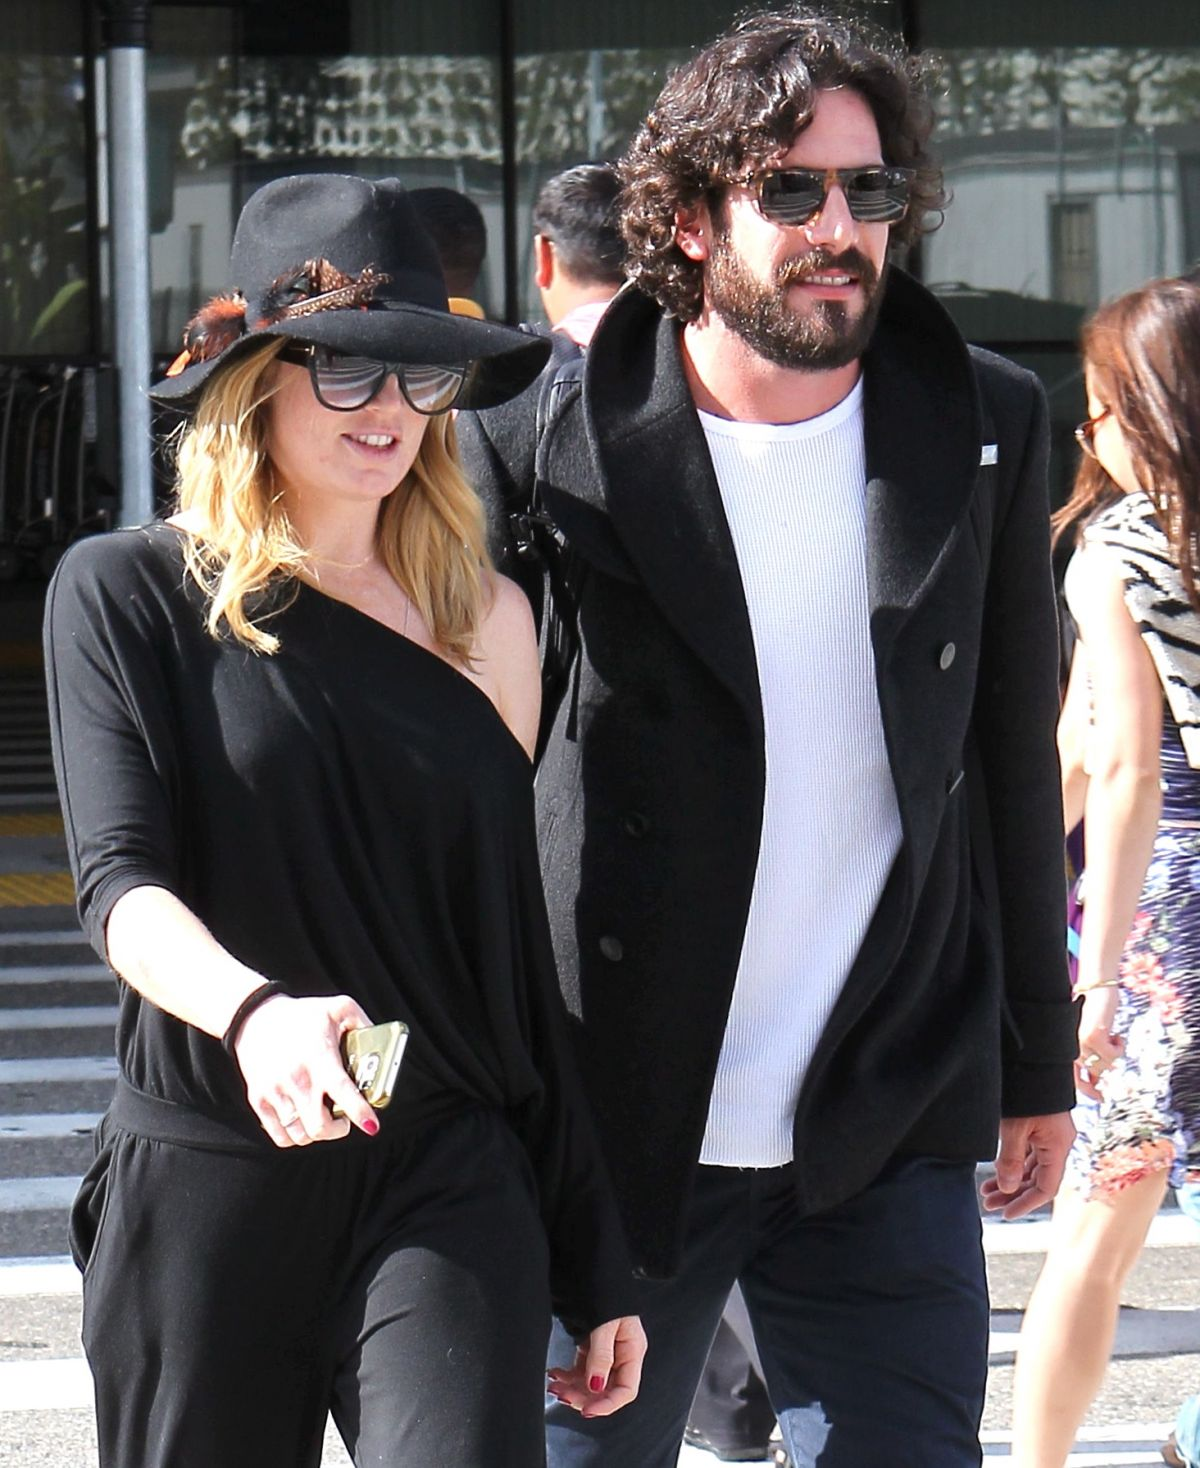 Caity Lotz Out With Her Boyfriend - Celebzz - Celebzz Kate Hudson